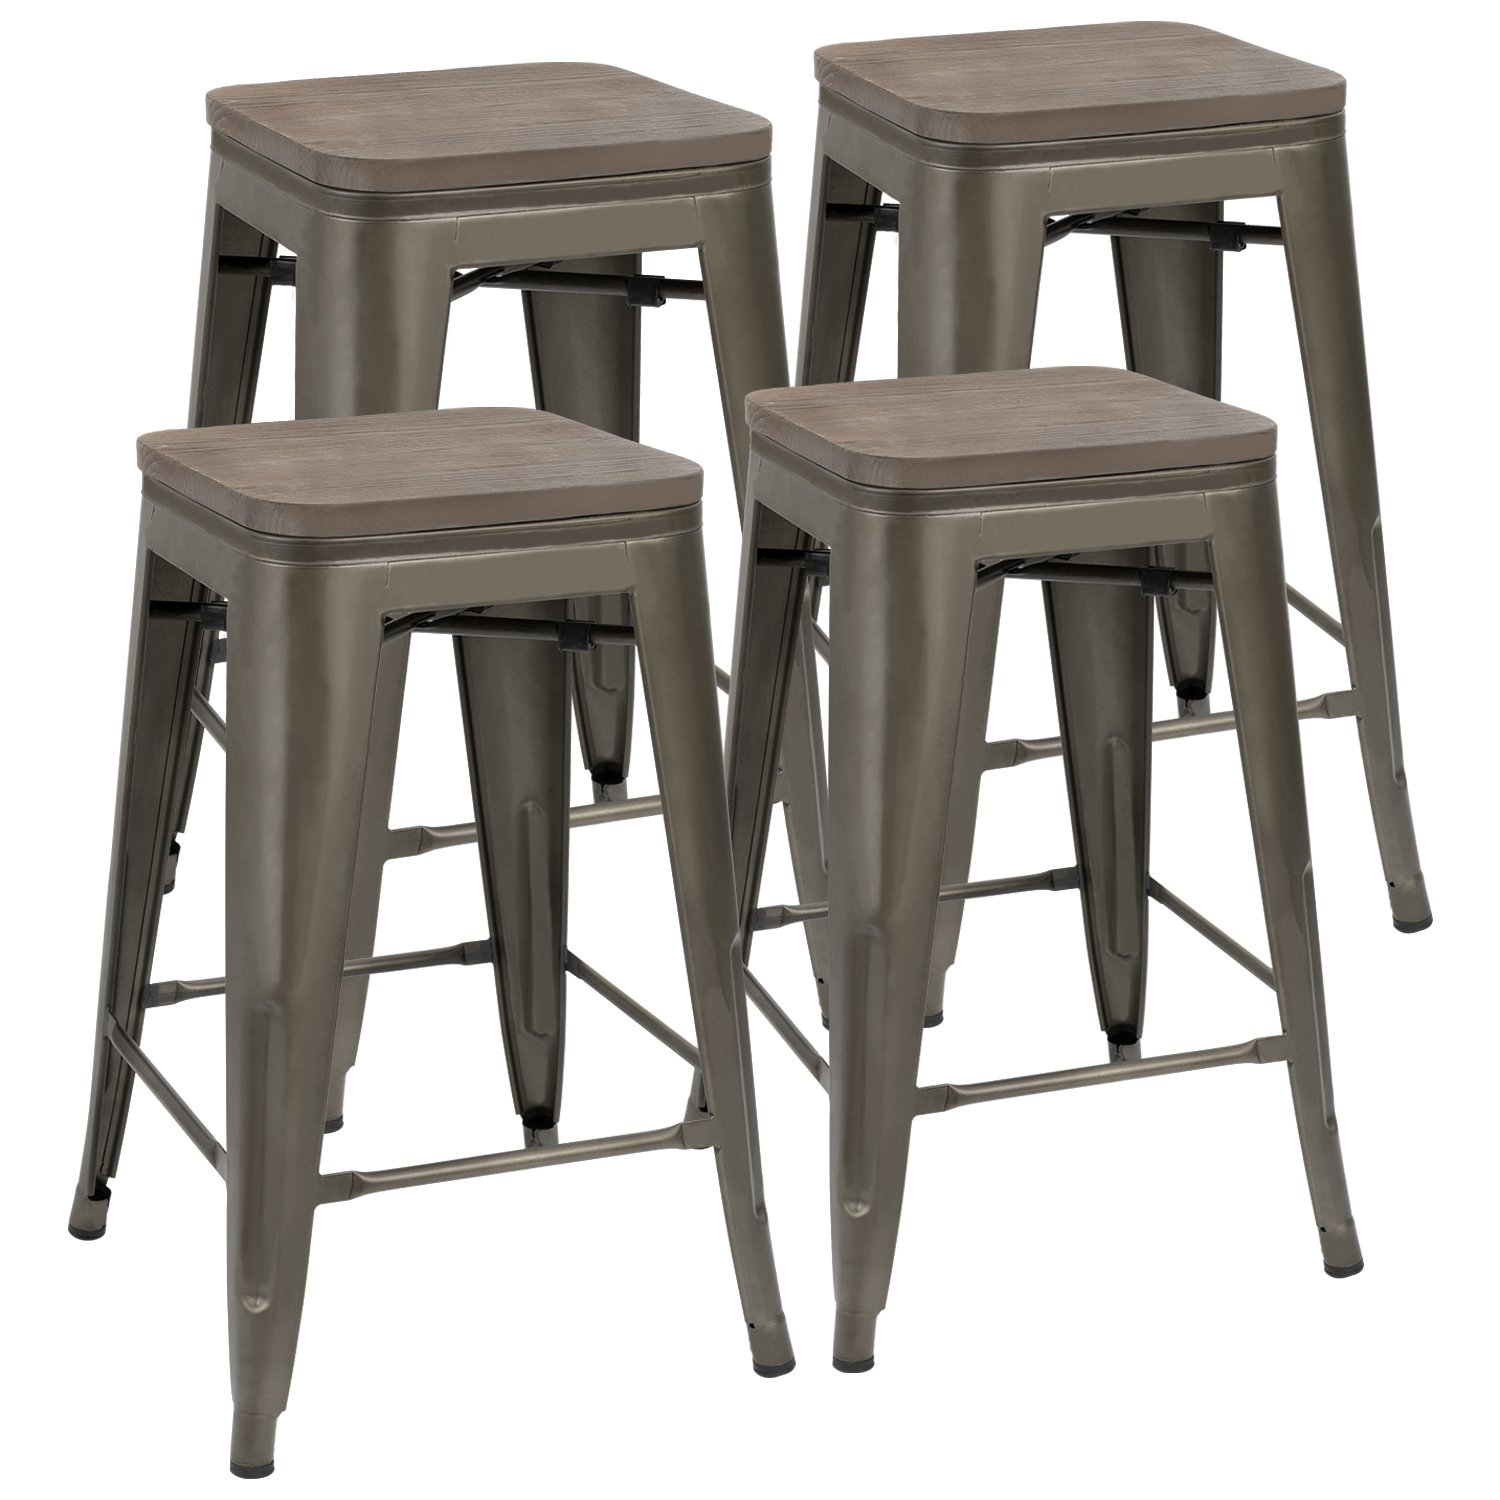 JUMMICO Metal Bar Stools Indoor-Outdoor Stackable Modern 24 Inches Gun Metal Counter Height Industrial Barstools with Wooden Seat (Set of 4) by JUMMICO